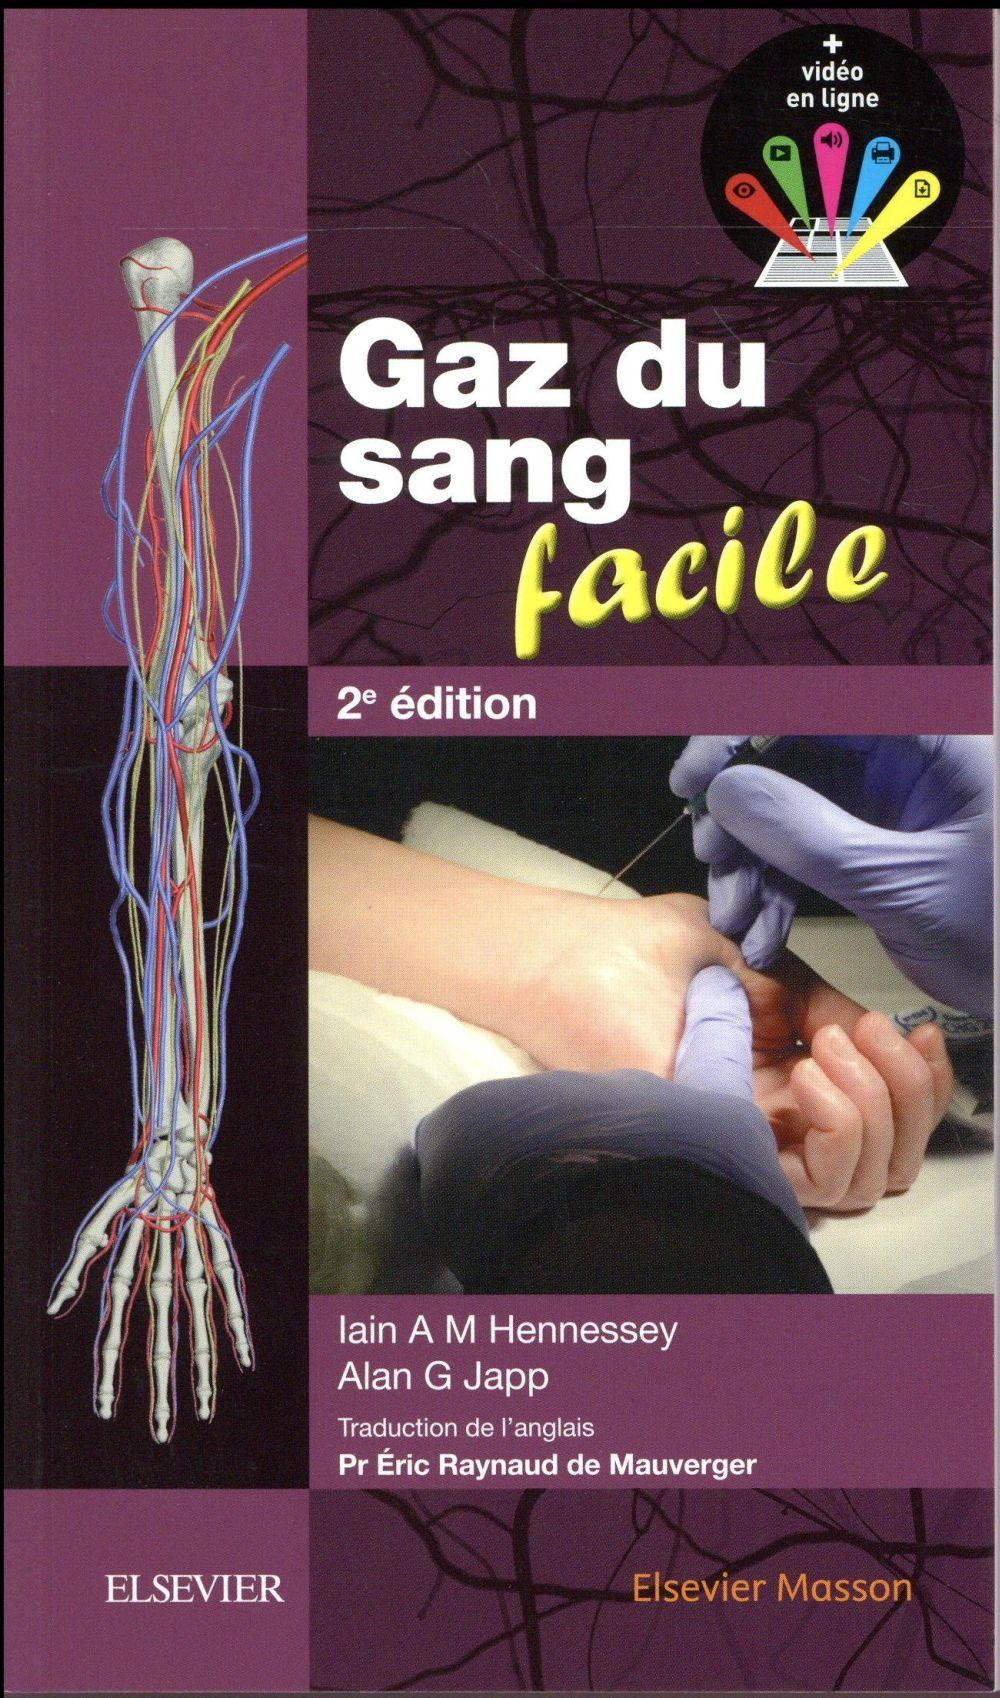 Gaz du sang facile (2e édition)  - Collectif